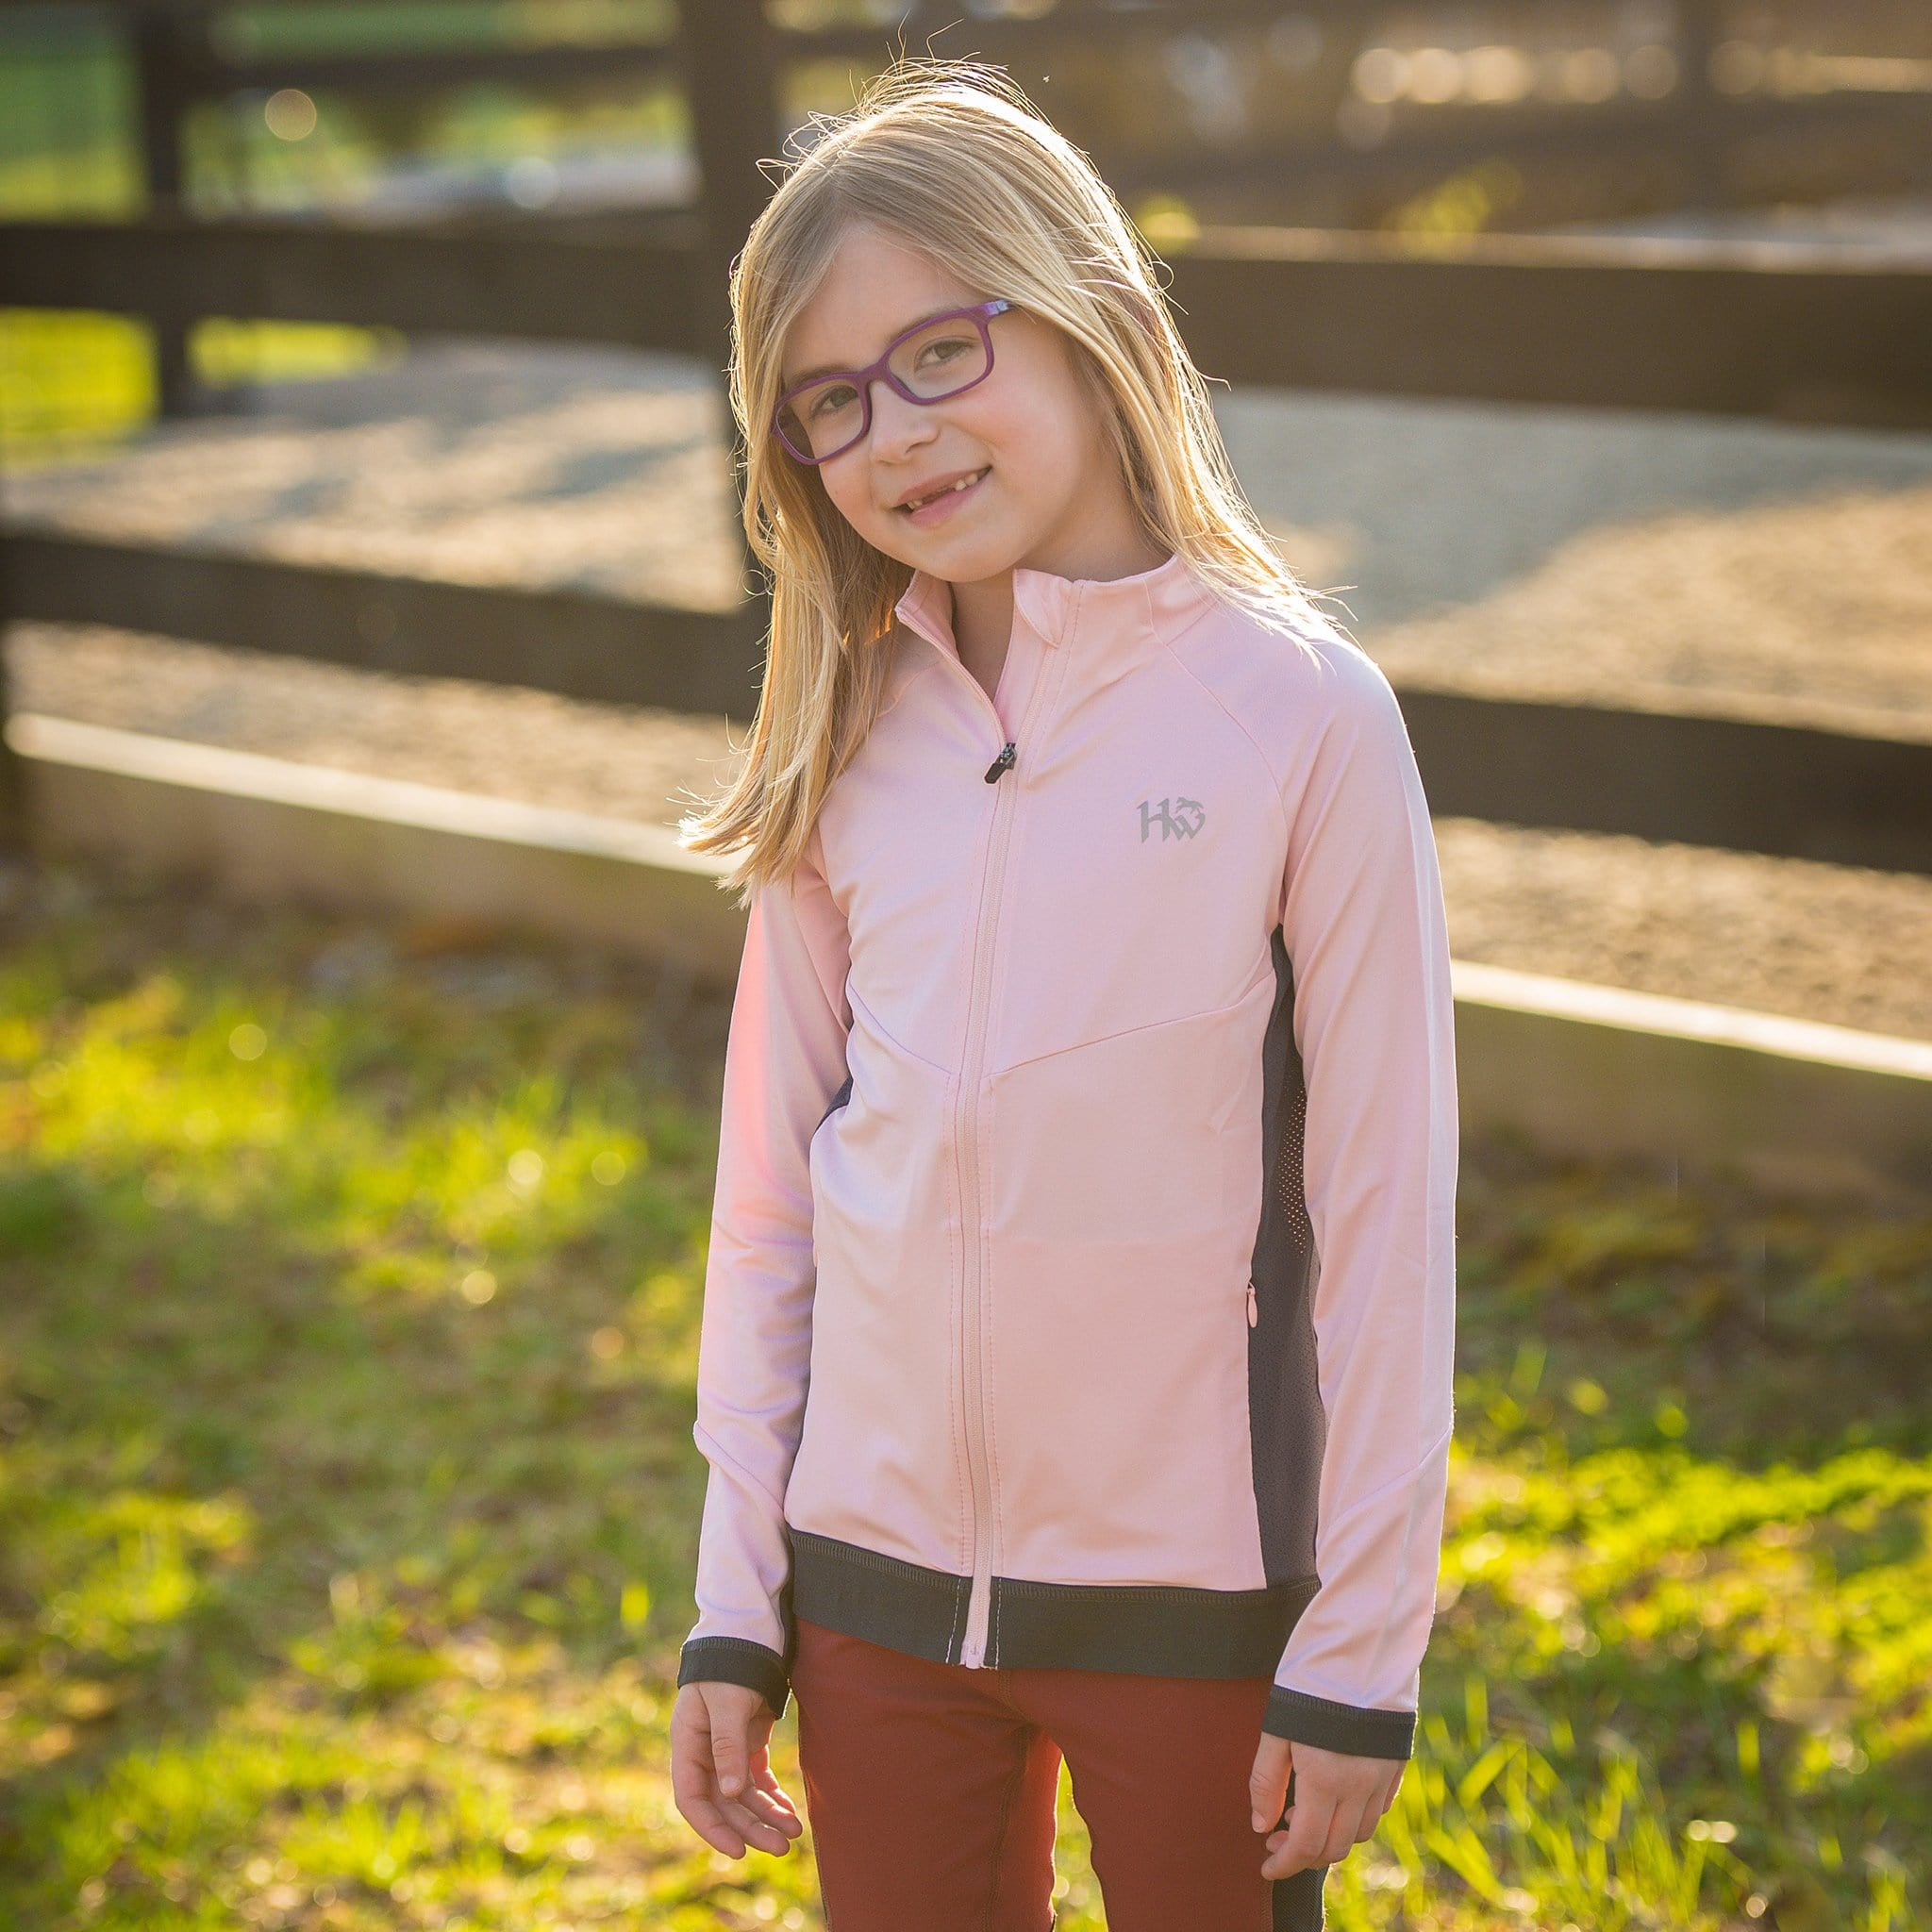 Horseware Girl's Lana Technical Full Zip Top CJHQPH Pink and Grey On Child